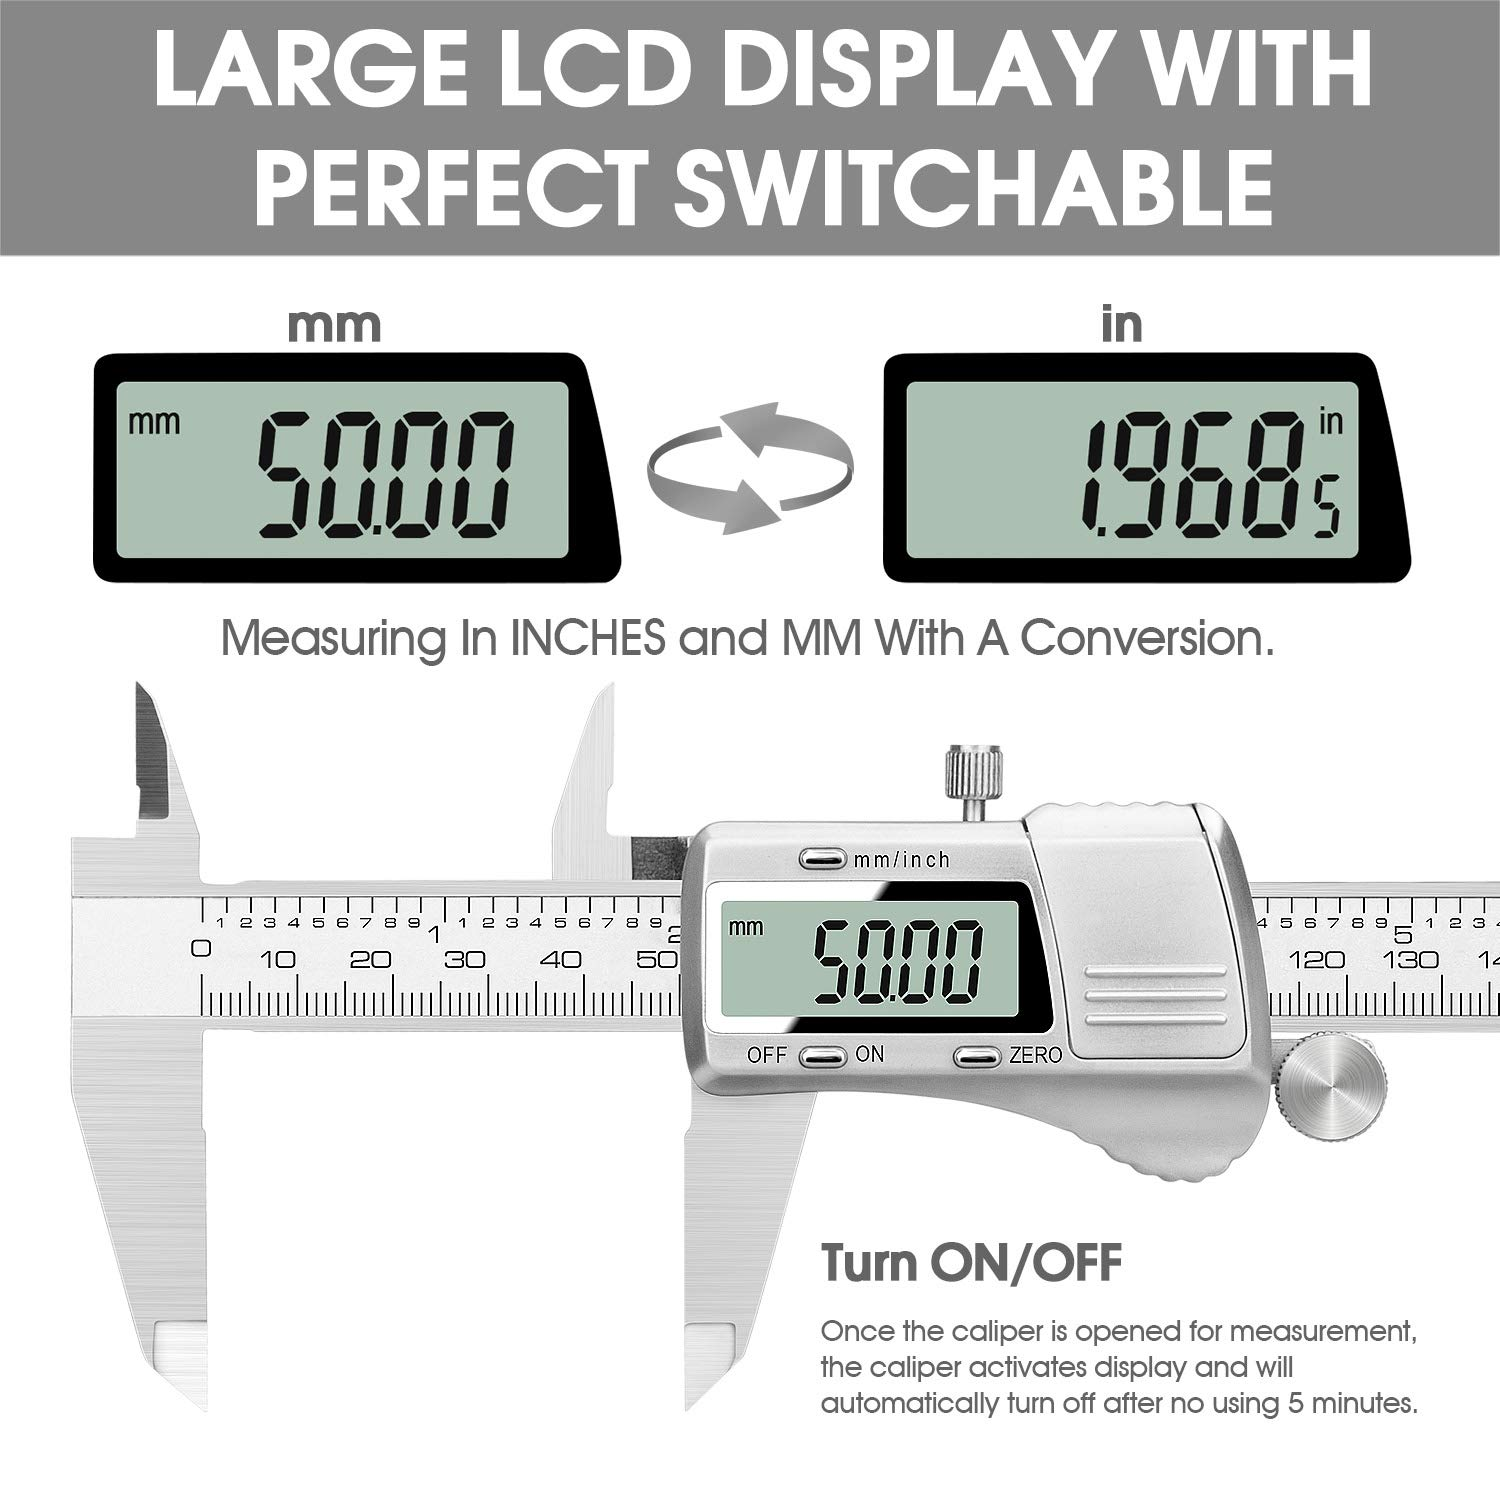 0-6 Inch//Metric Conversion VAVINK High Precision Caliper Gauge 0-150mm Electronic Digital Vernier Caliper Stainless Steel Digital Caliper with Extra-Large LCD Display